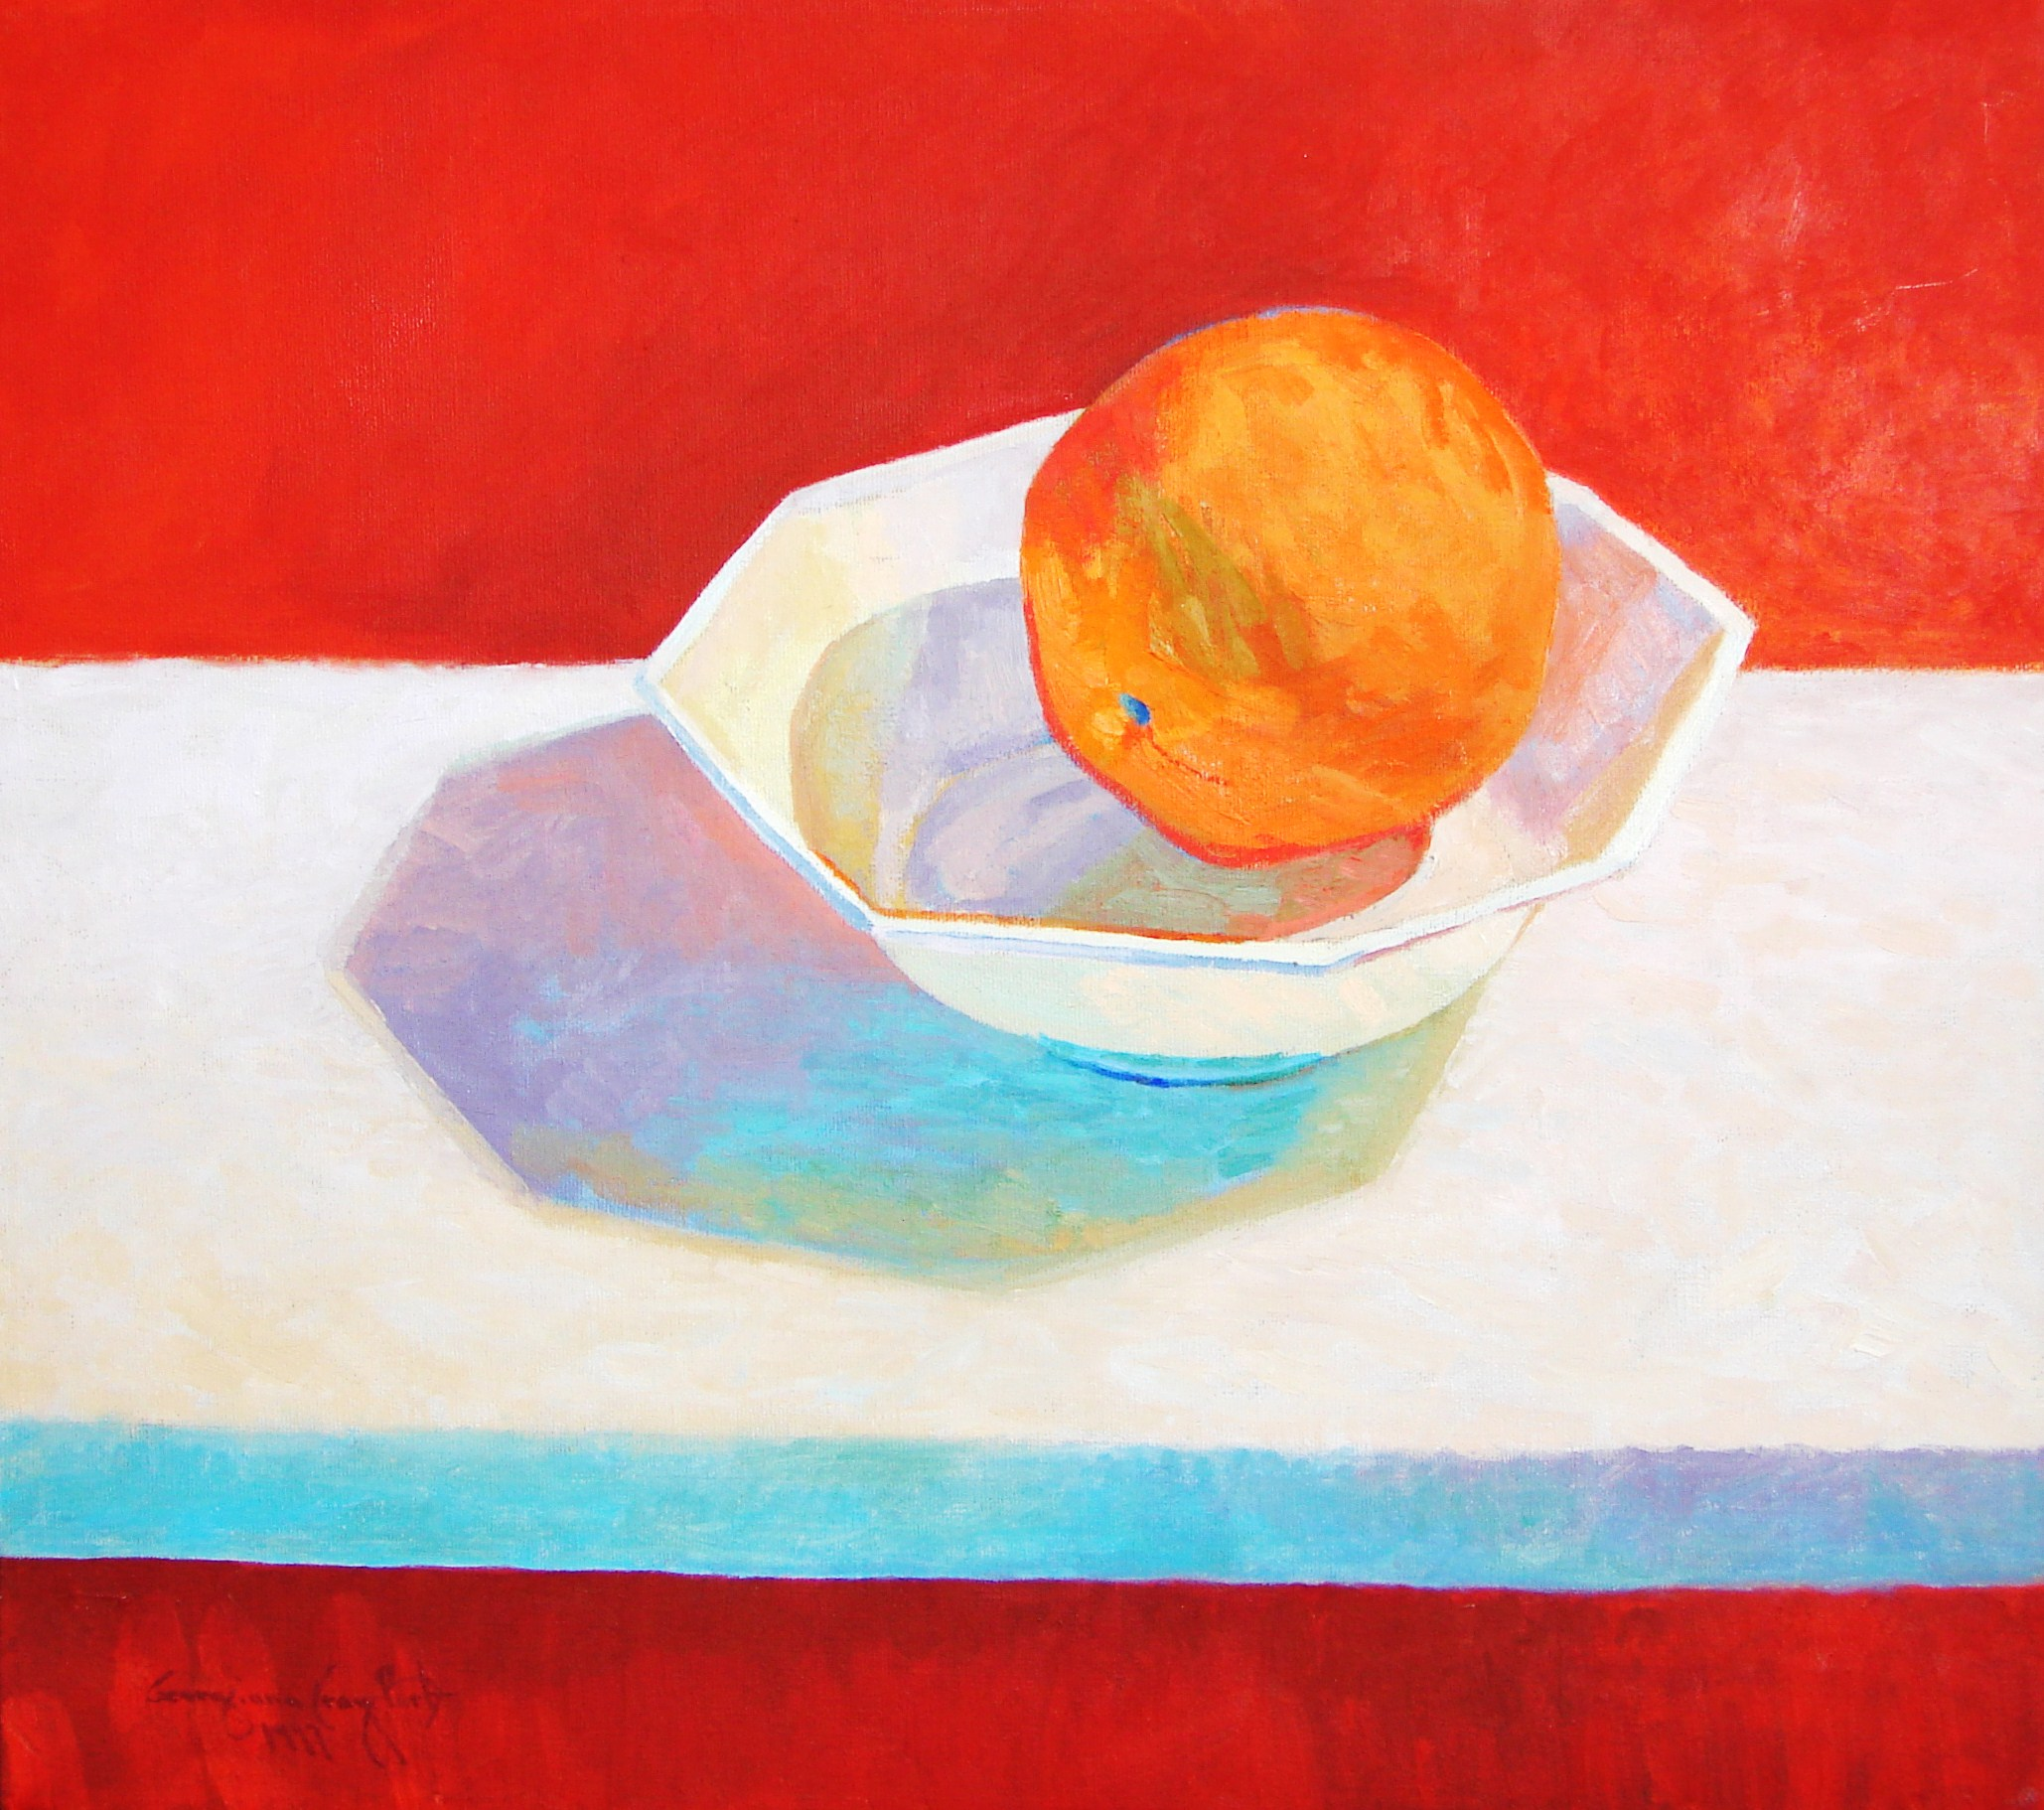 "ORANGE IN A BOWL WITH BLUE LINE . 16"" x 18"" . OIL ON CANVAS"